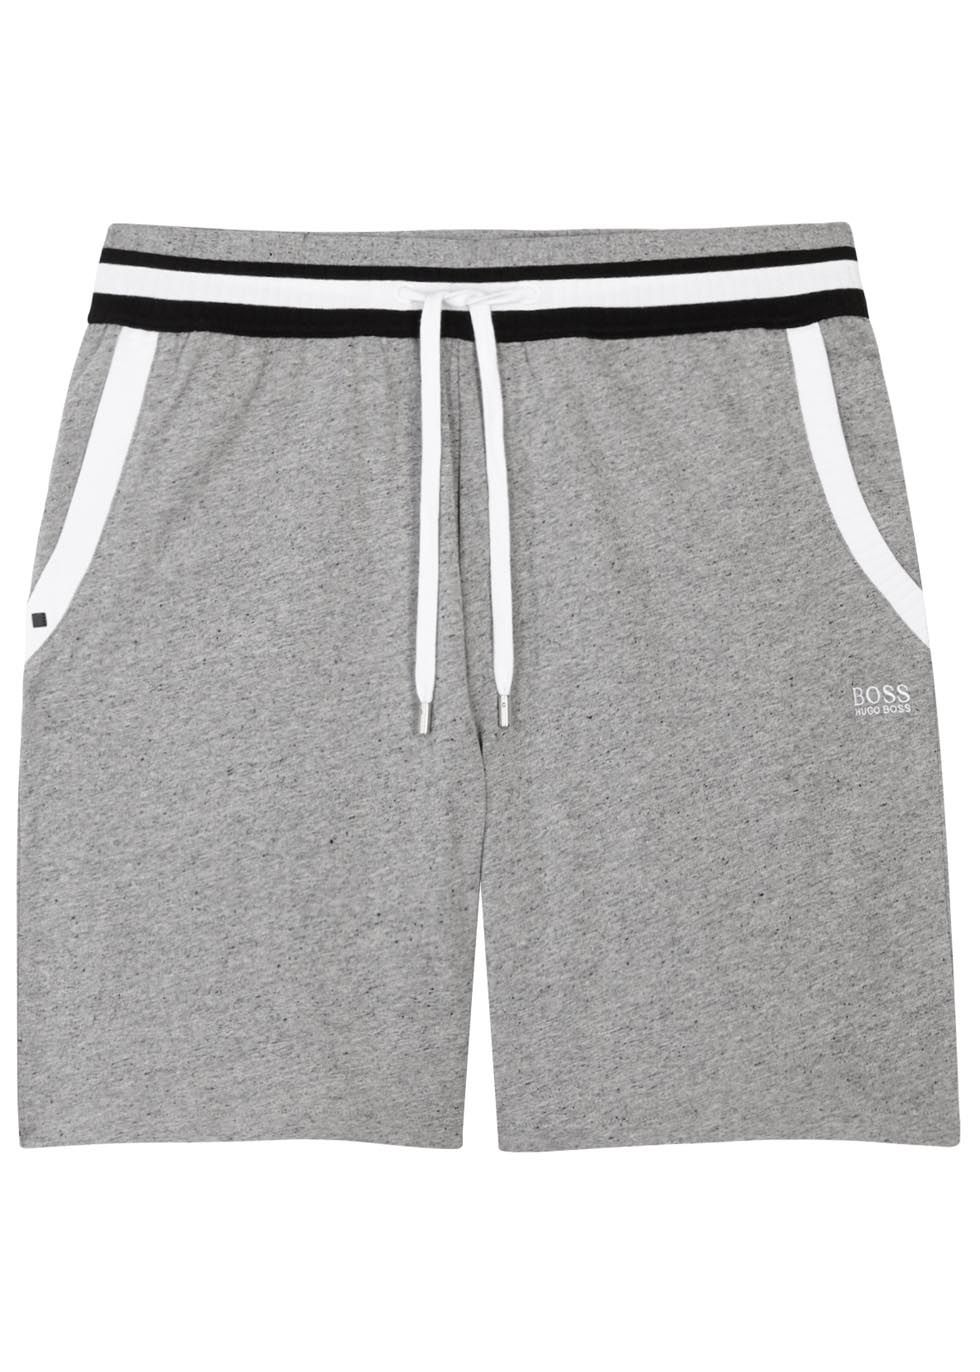 9dc037598 BOSS grey mélange cotton shorts Striped ribbed drawstring waist and trim,  side slant pockets, embroidered designer logo Pull on 100% cotton; ...